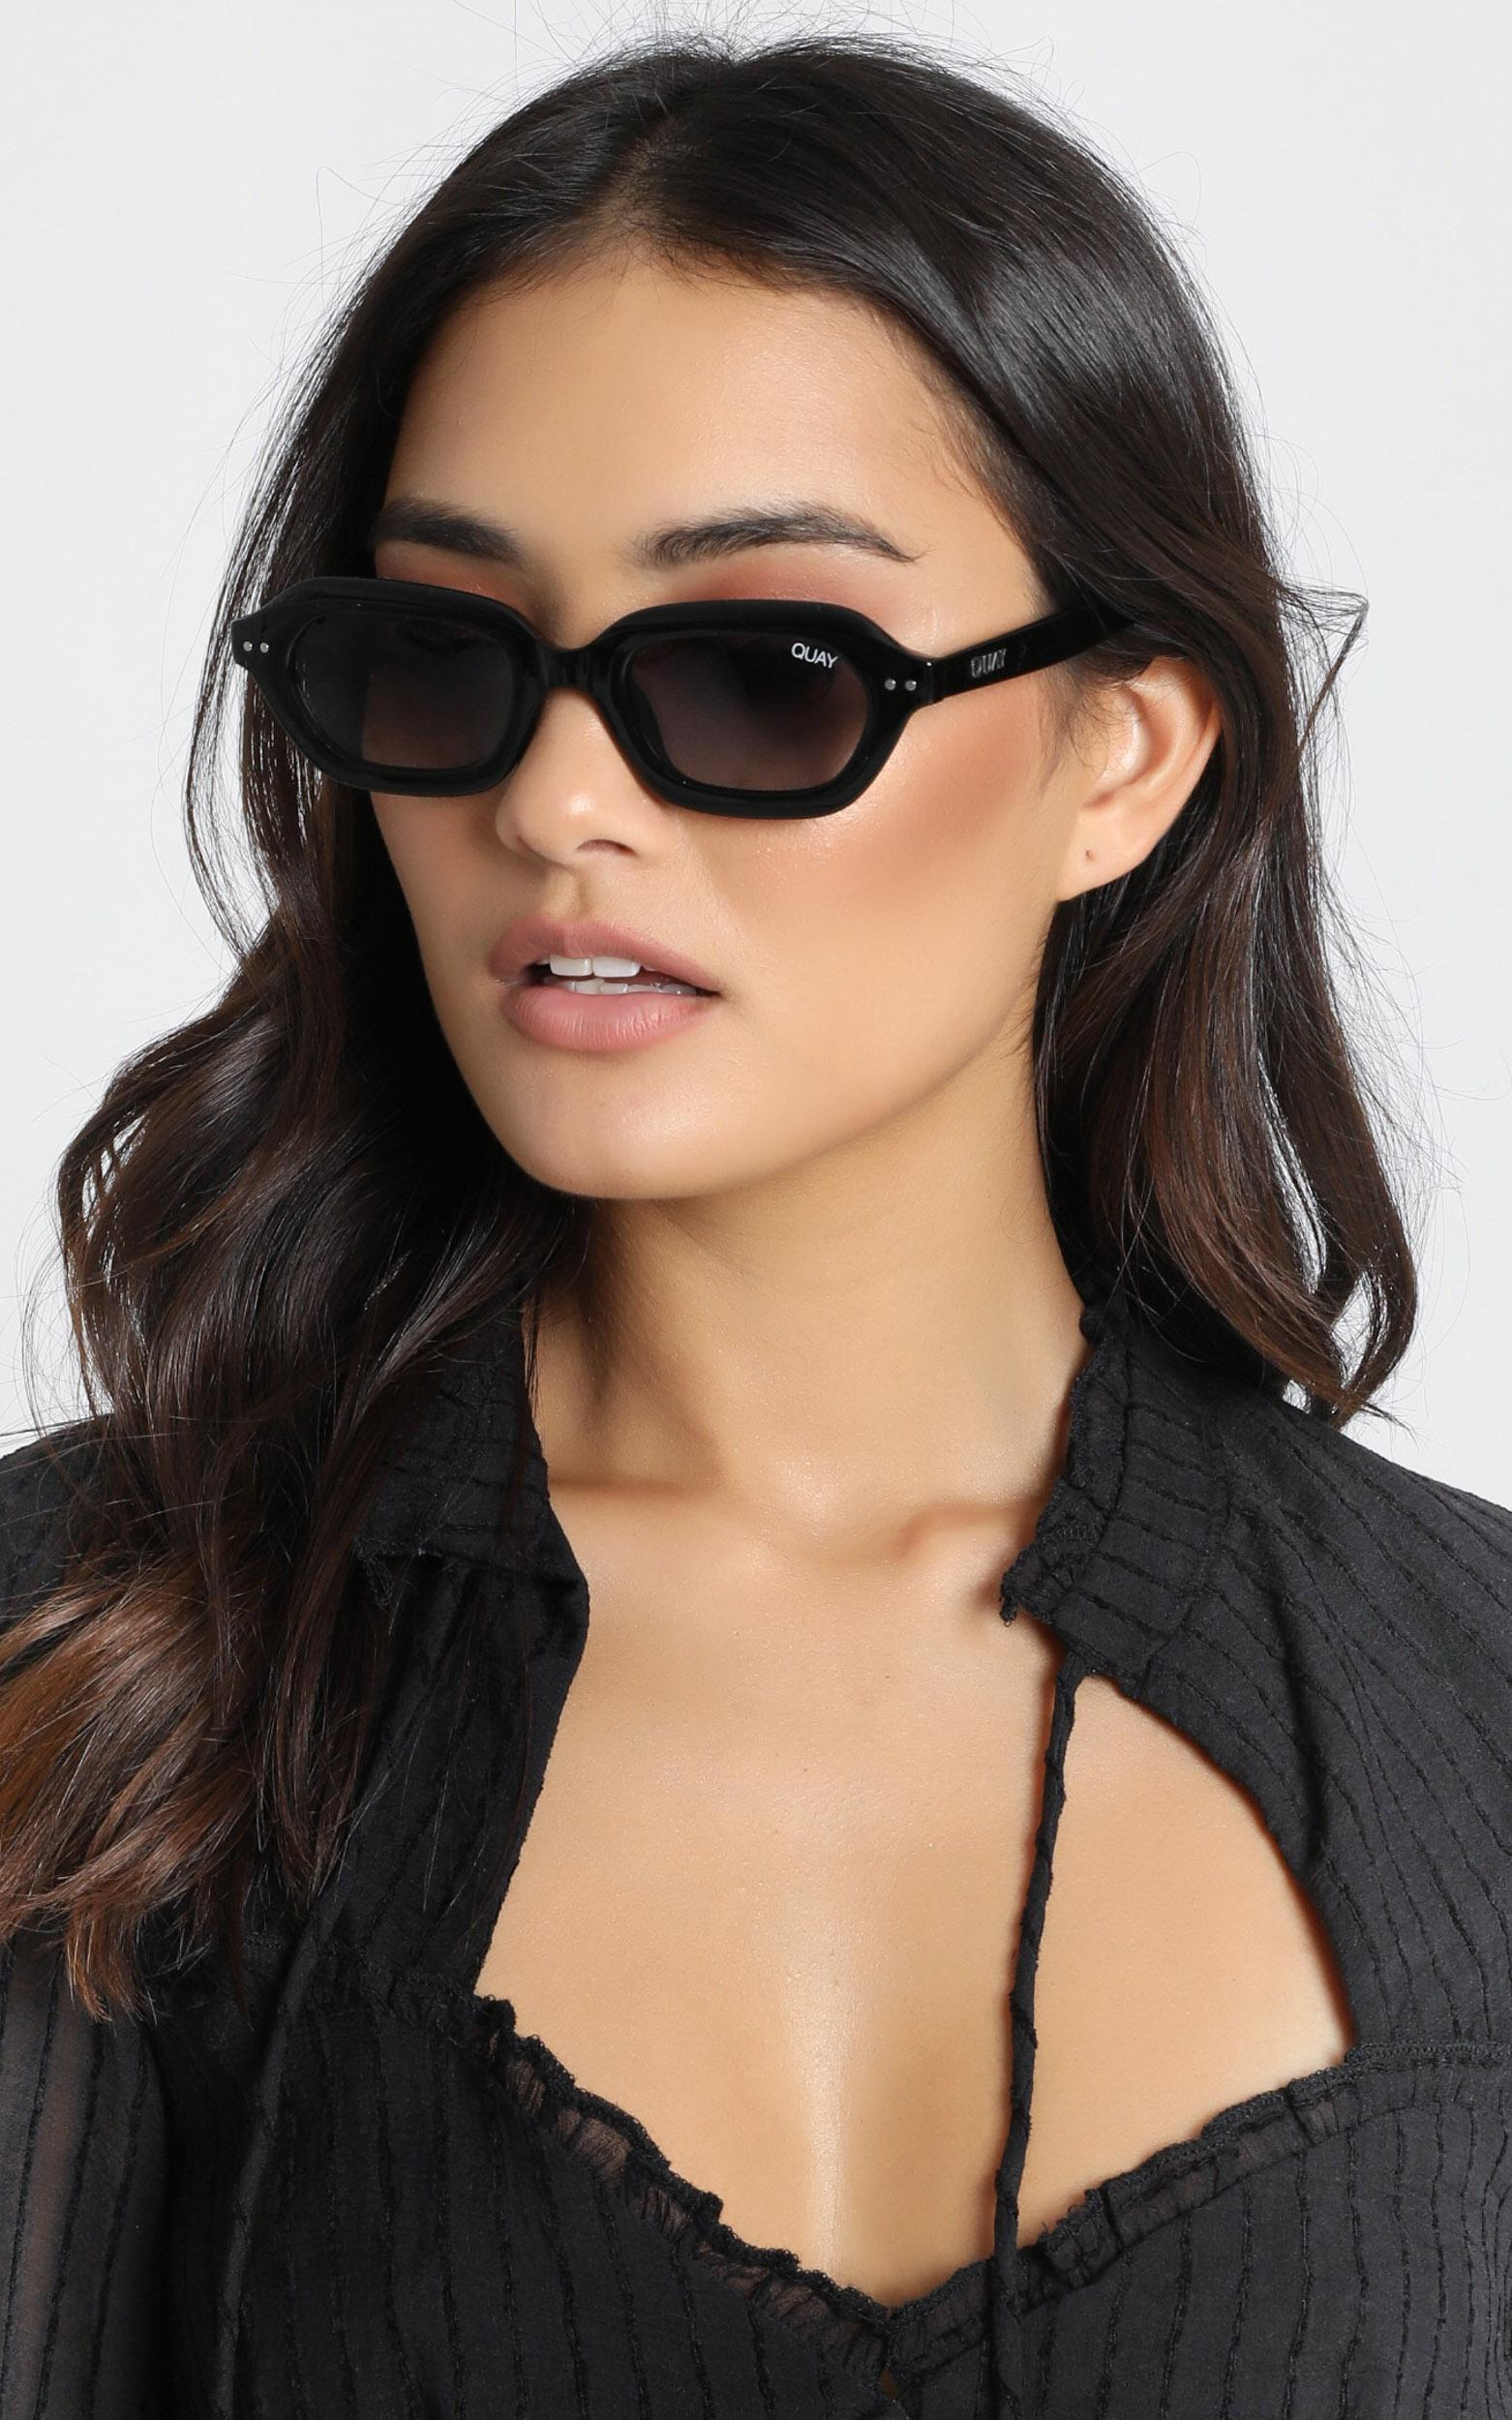 Quay - Anything Goes Sunglasses In Black, , hi-res image number null